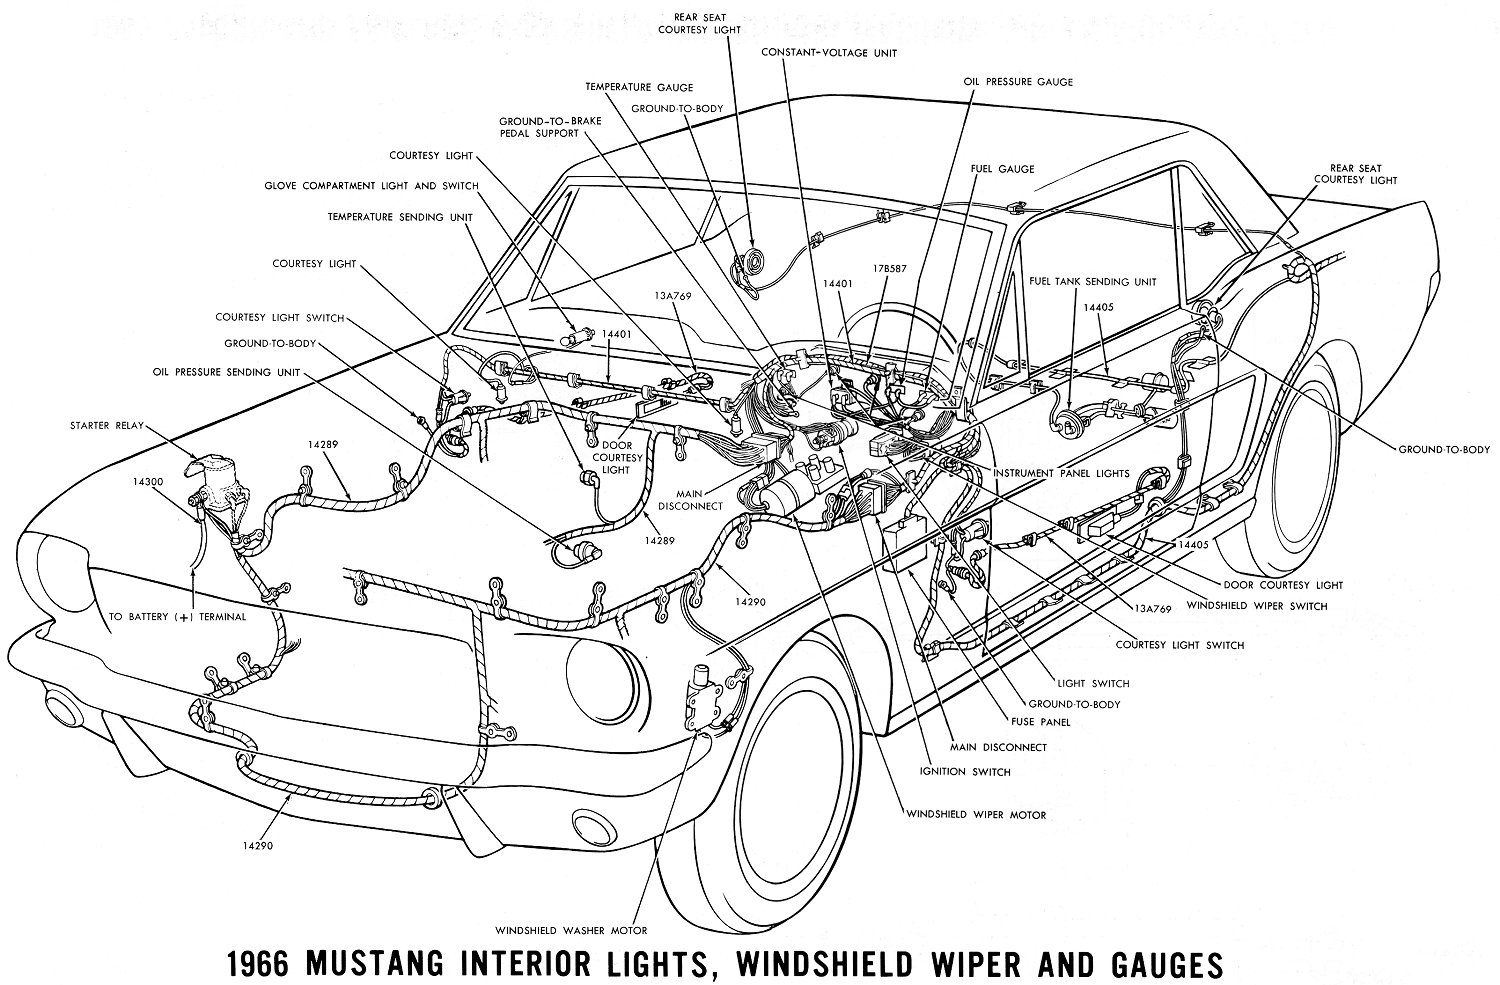 El Ritningar 1968 Mustang Air Conditioning Wiring Diagram 1966 Interior Lights Windshield Wiper And Gauges Schema